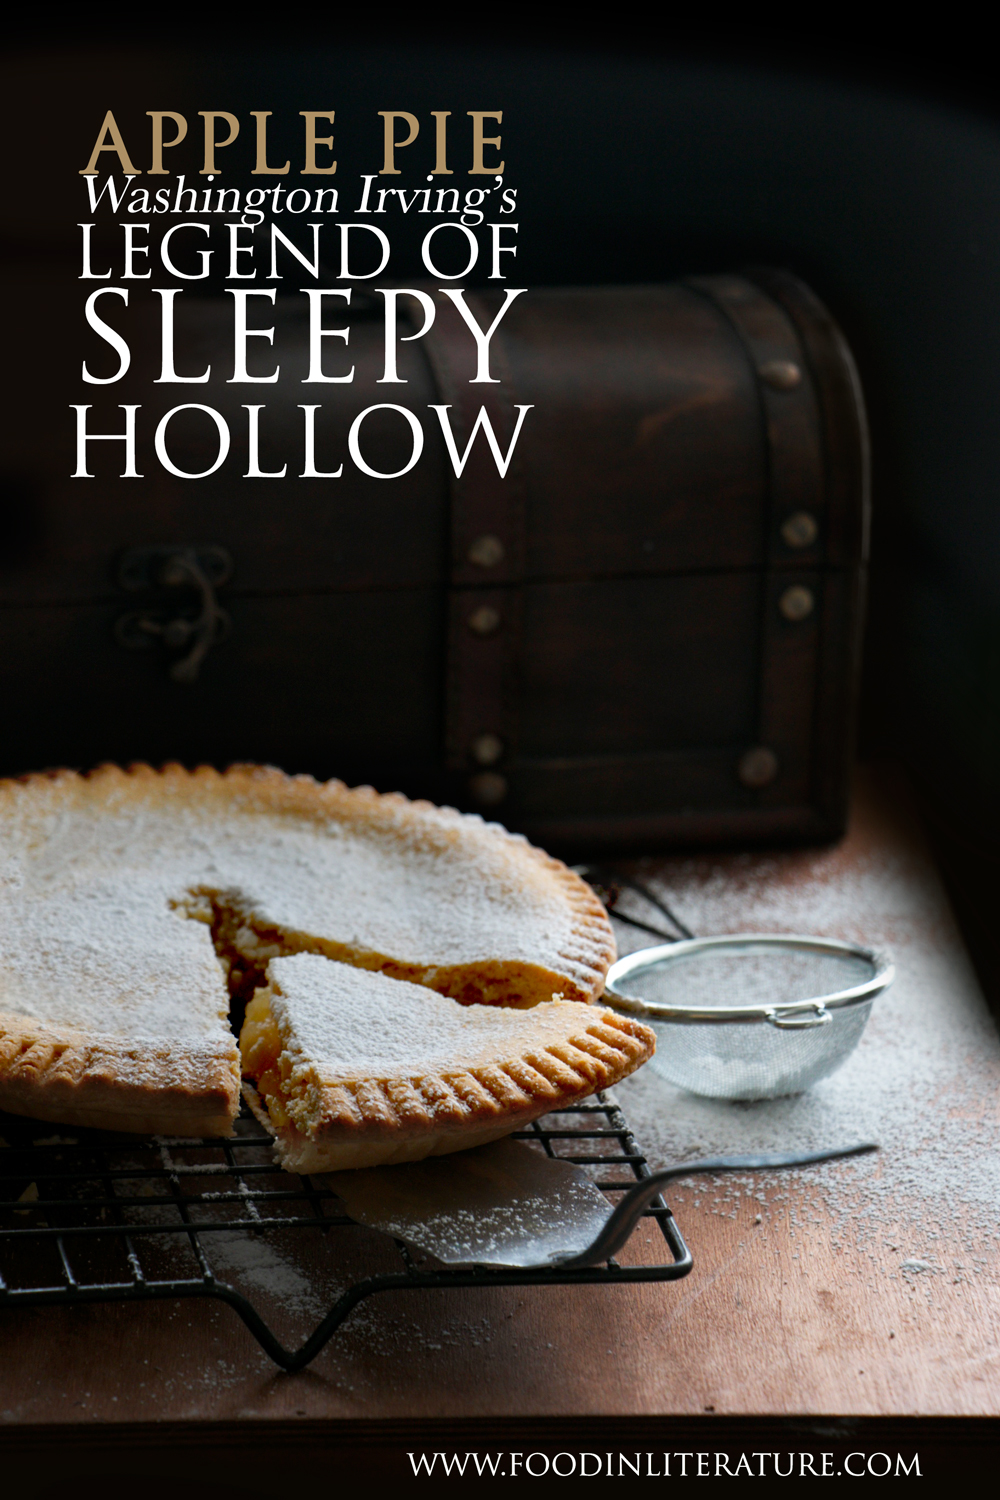 Washington Irvings' Legend of Sleepy Hollow is the Halloween story we're all grown up with. Now you can throw a Sleepy Hollow Halloween party with the full menu and authentic recipes from the book. In this post we make the traditional apple pie.